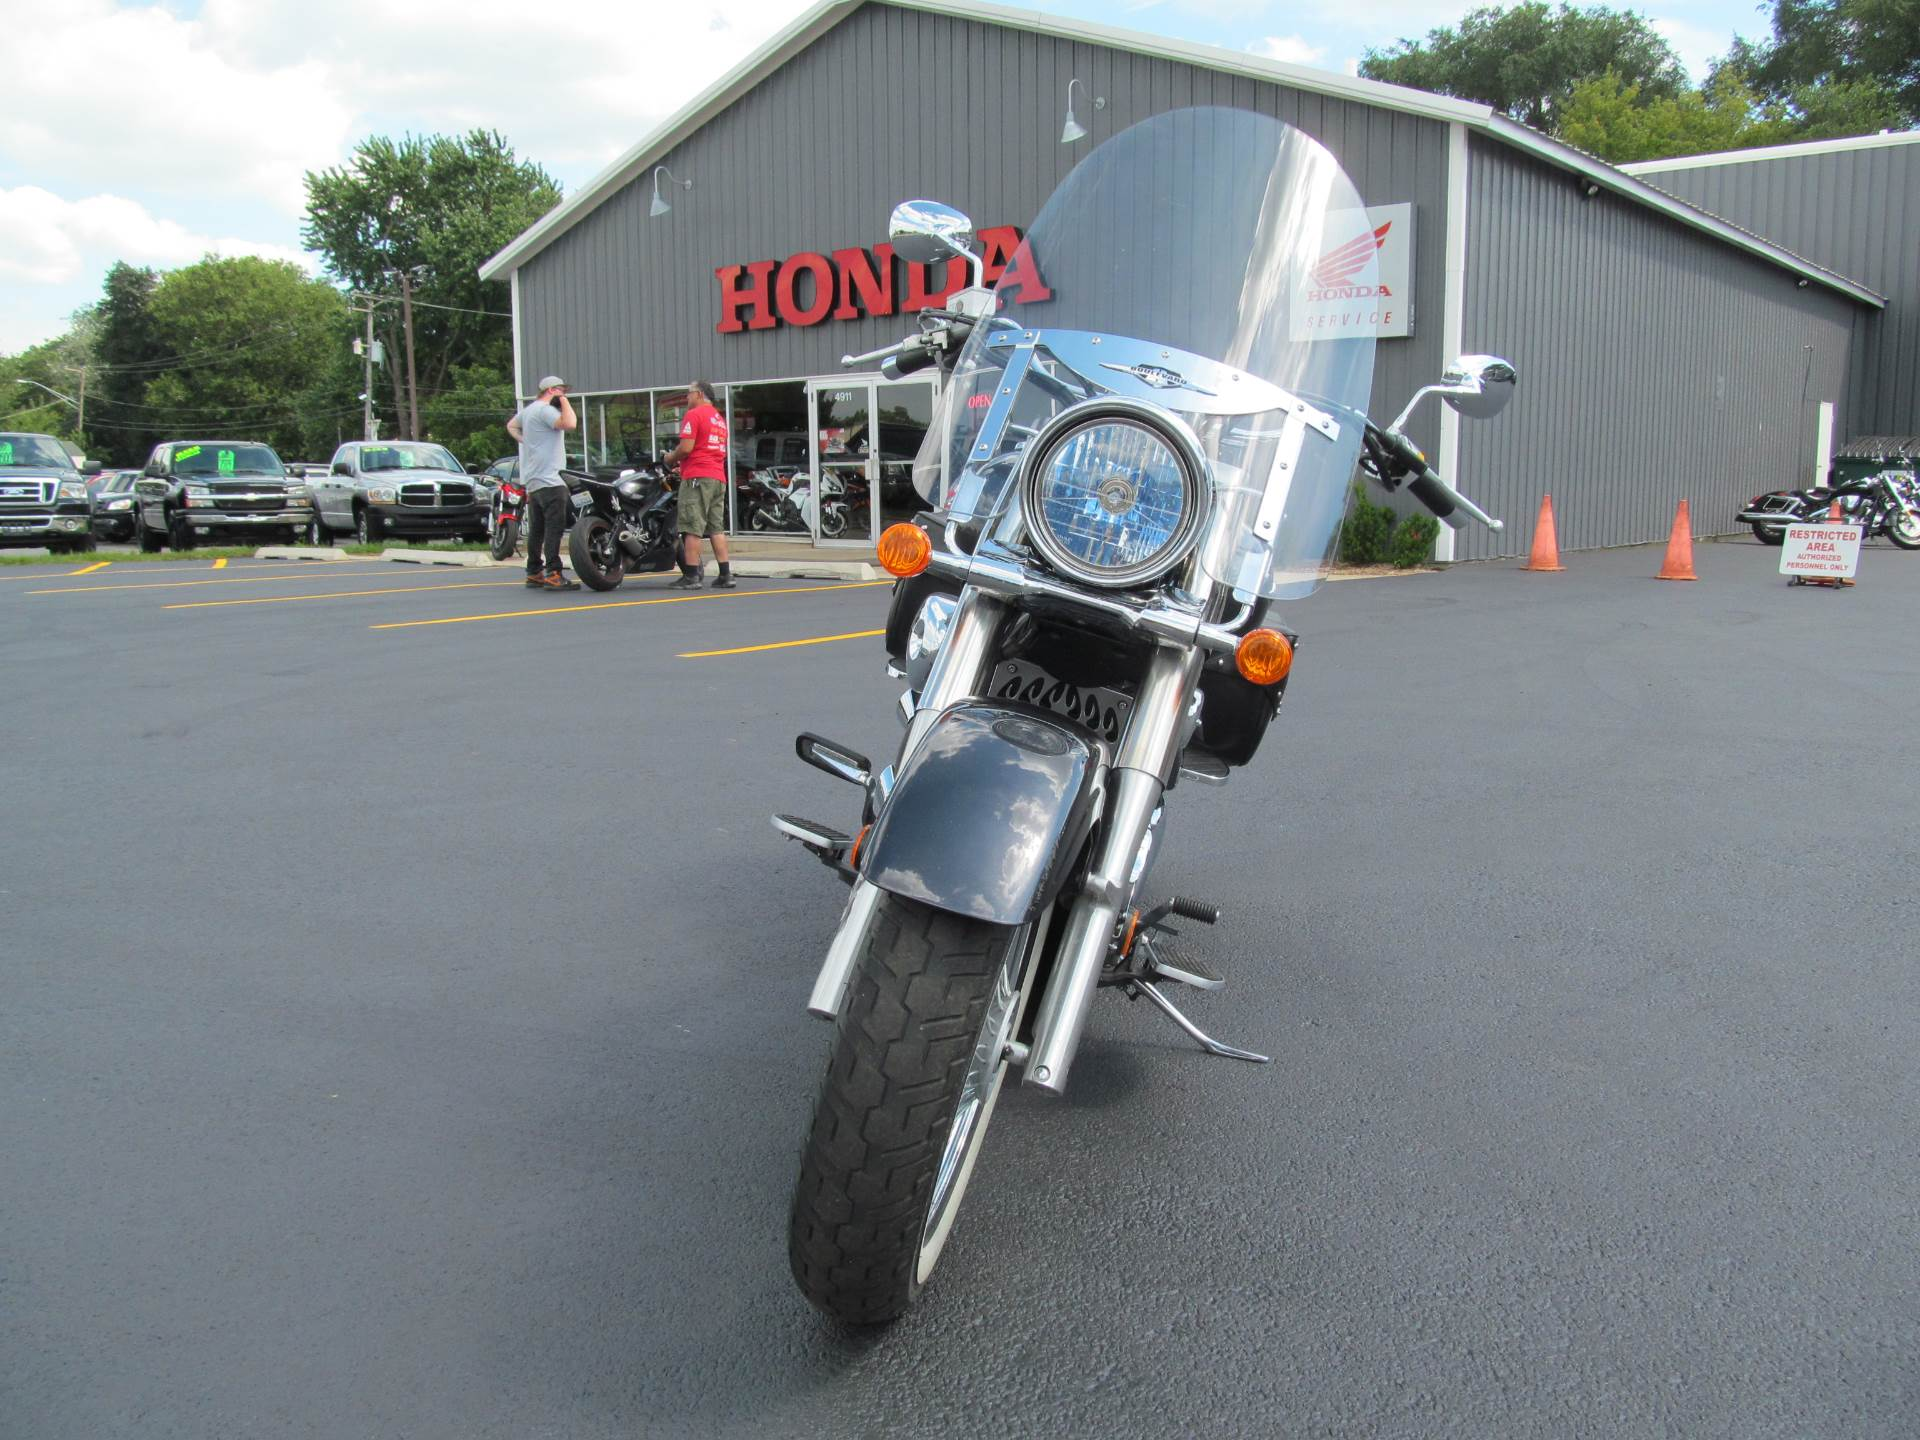 2005 Suzuki Boulevard C50T in Crystal Lake, Illinois